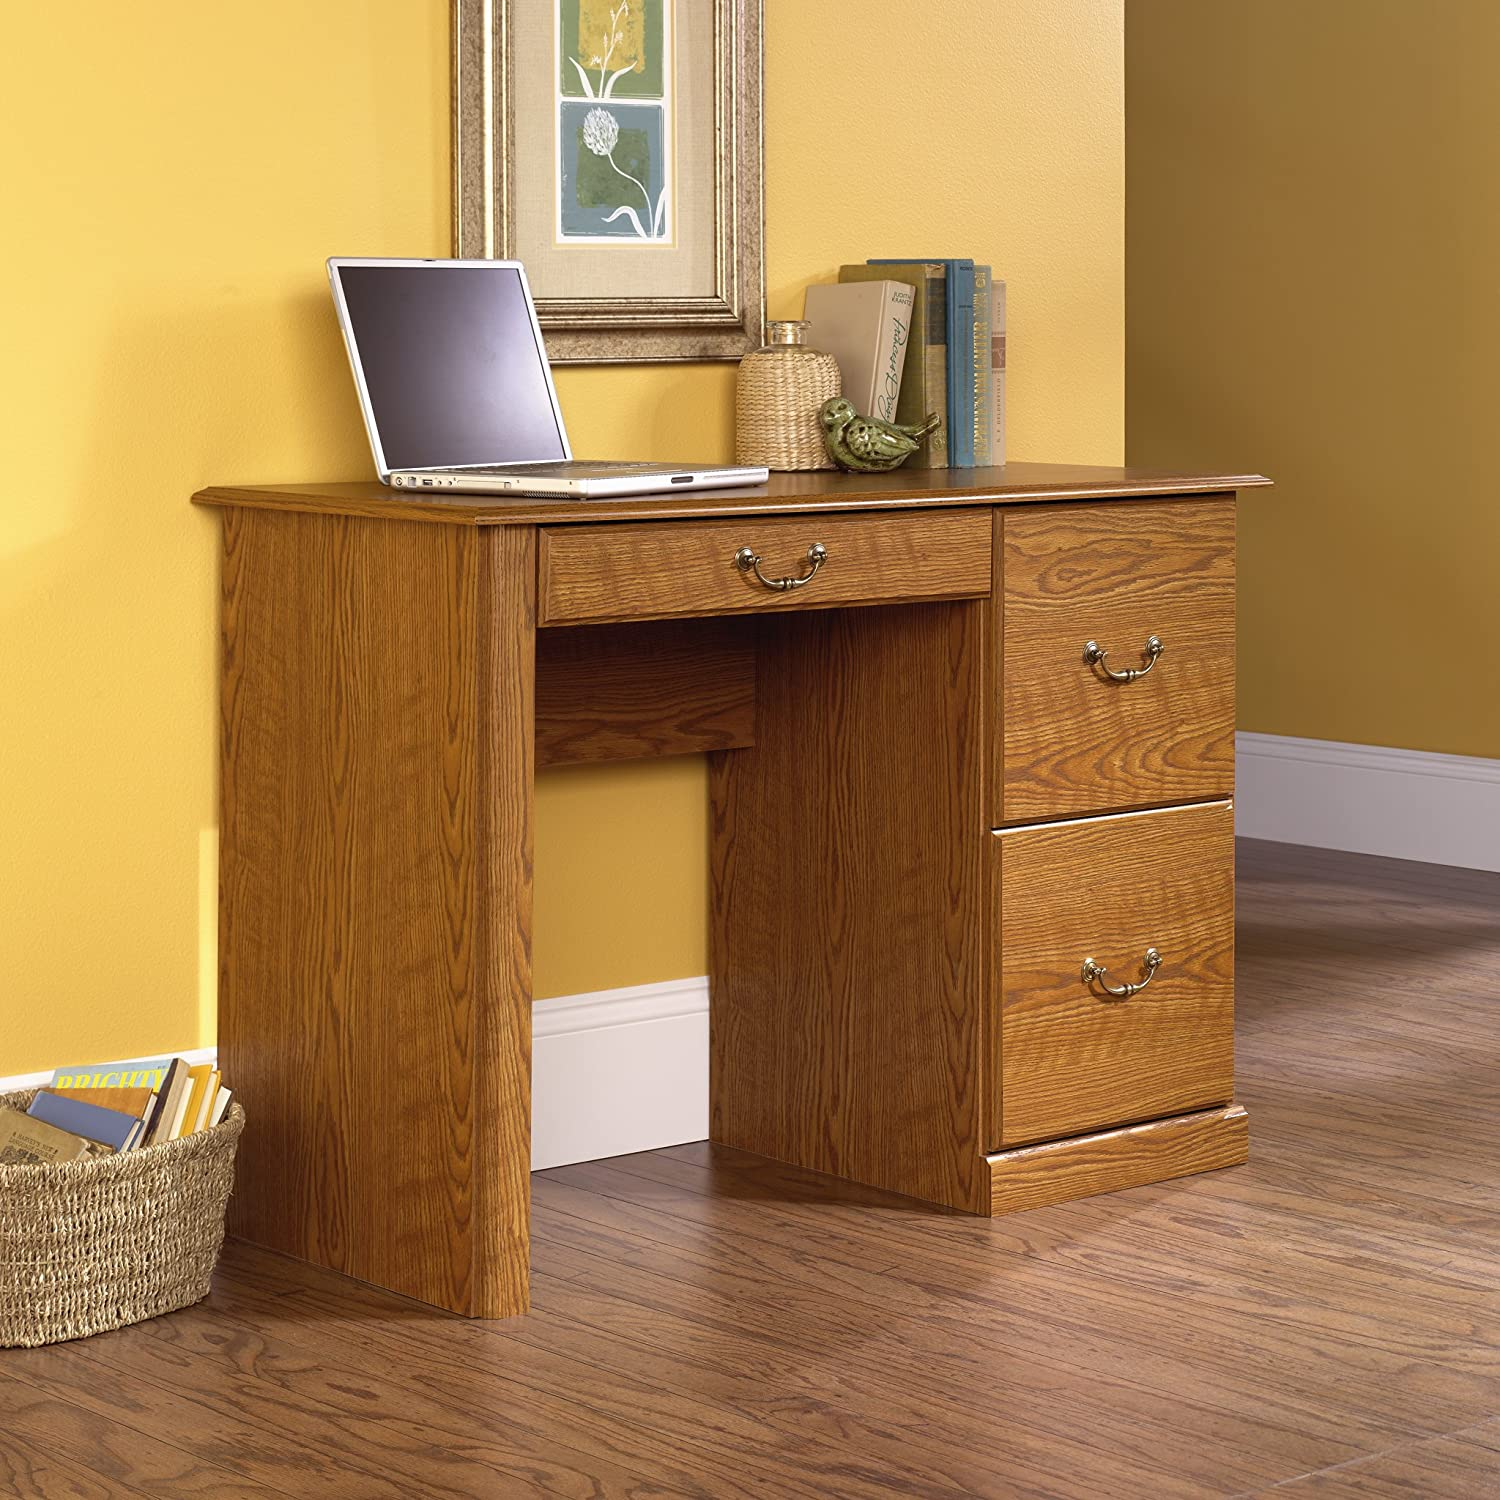 amazoncom sauder orchard hills computer desk carolina oak finish kitchen u0026 dining